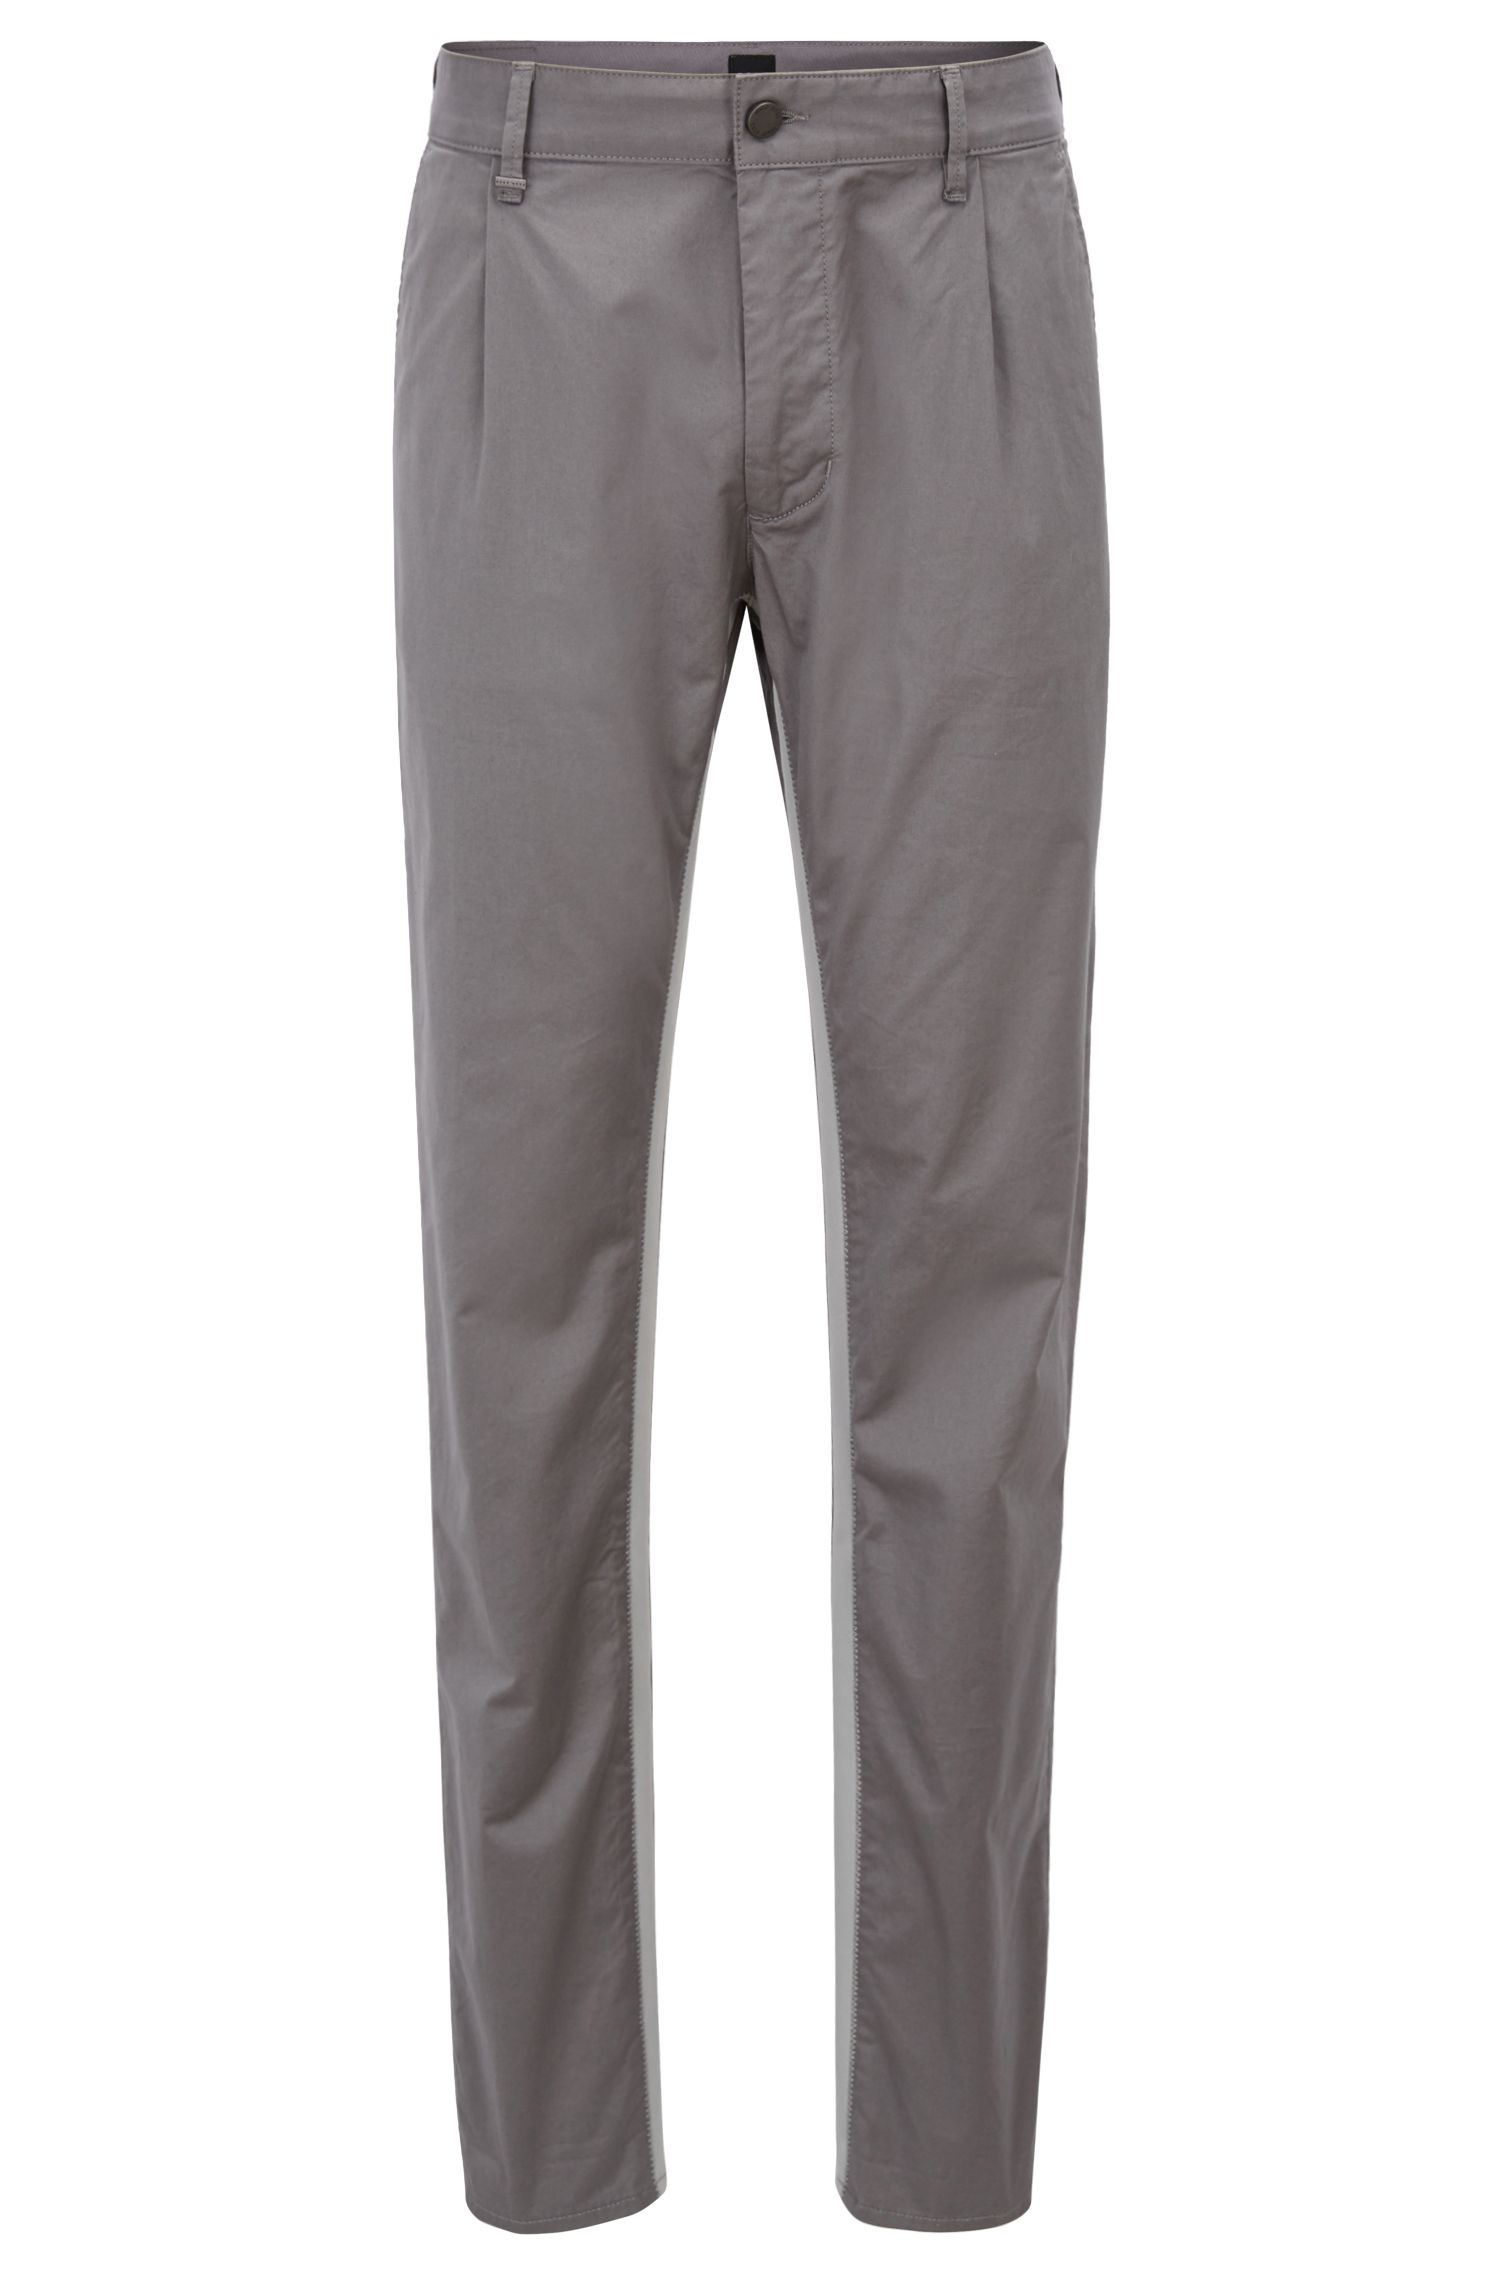 Pantalon Relaxed Fit en coton stretch avec bande ripstop, Gris chiné